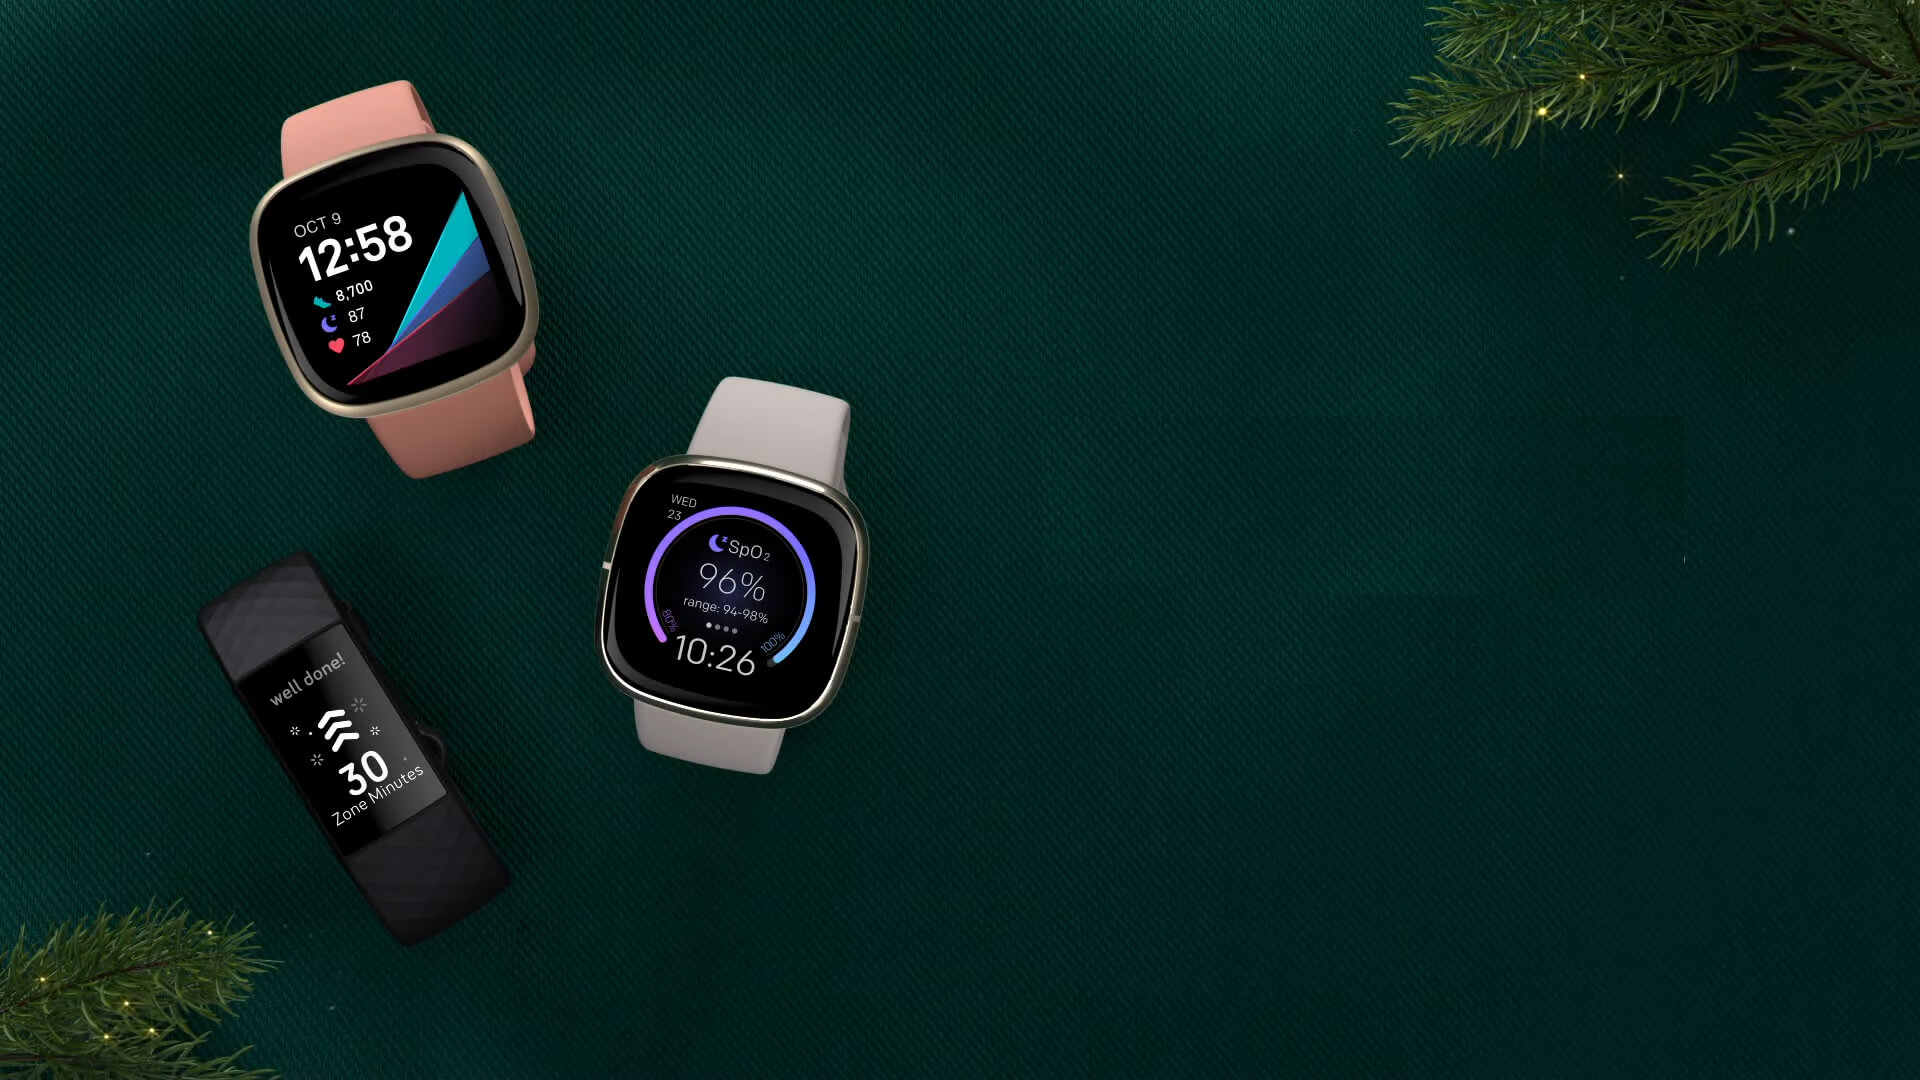 Fitness Band vs Smartwatch Fitbit